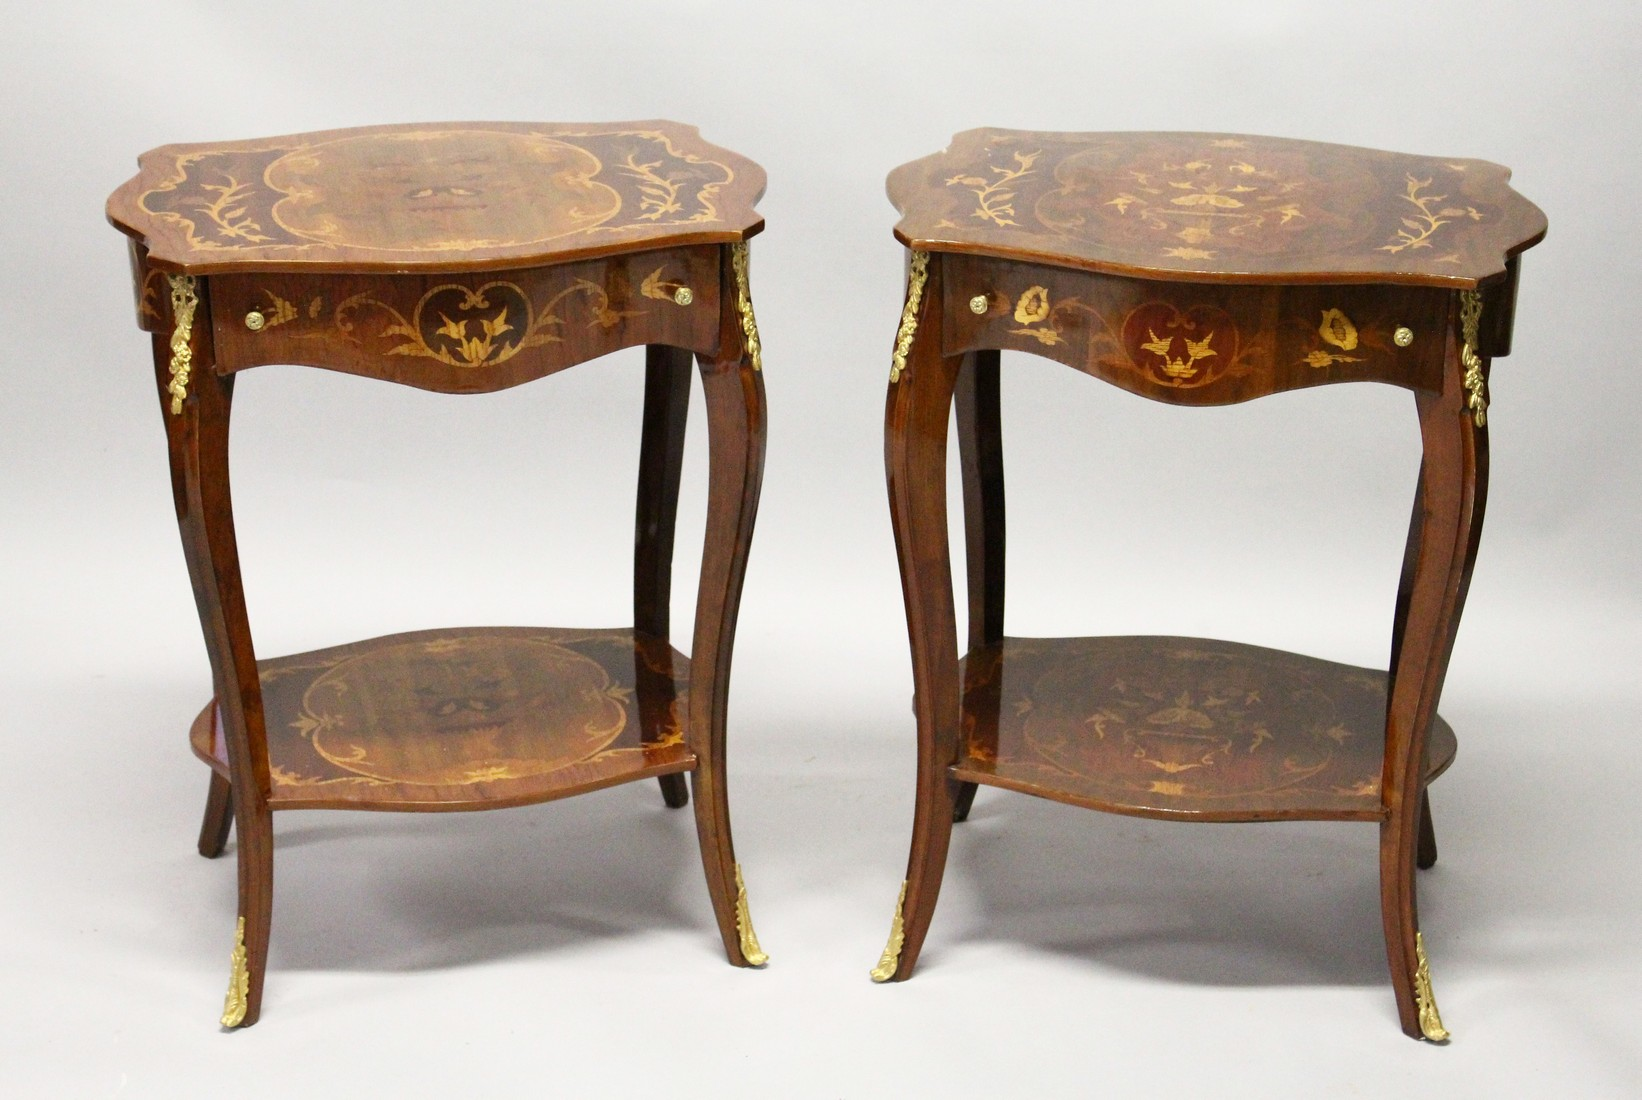 A PAIR OF FRENCH STYLE MARQUETRY INLAID TWO TIER SINGLE DRAWER SIDE TABLES, with cabriole legs 1ft